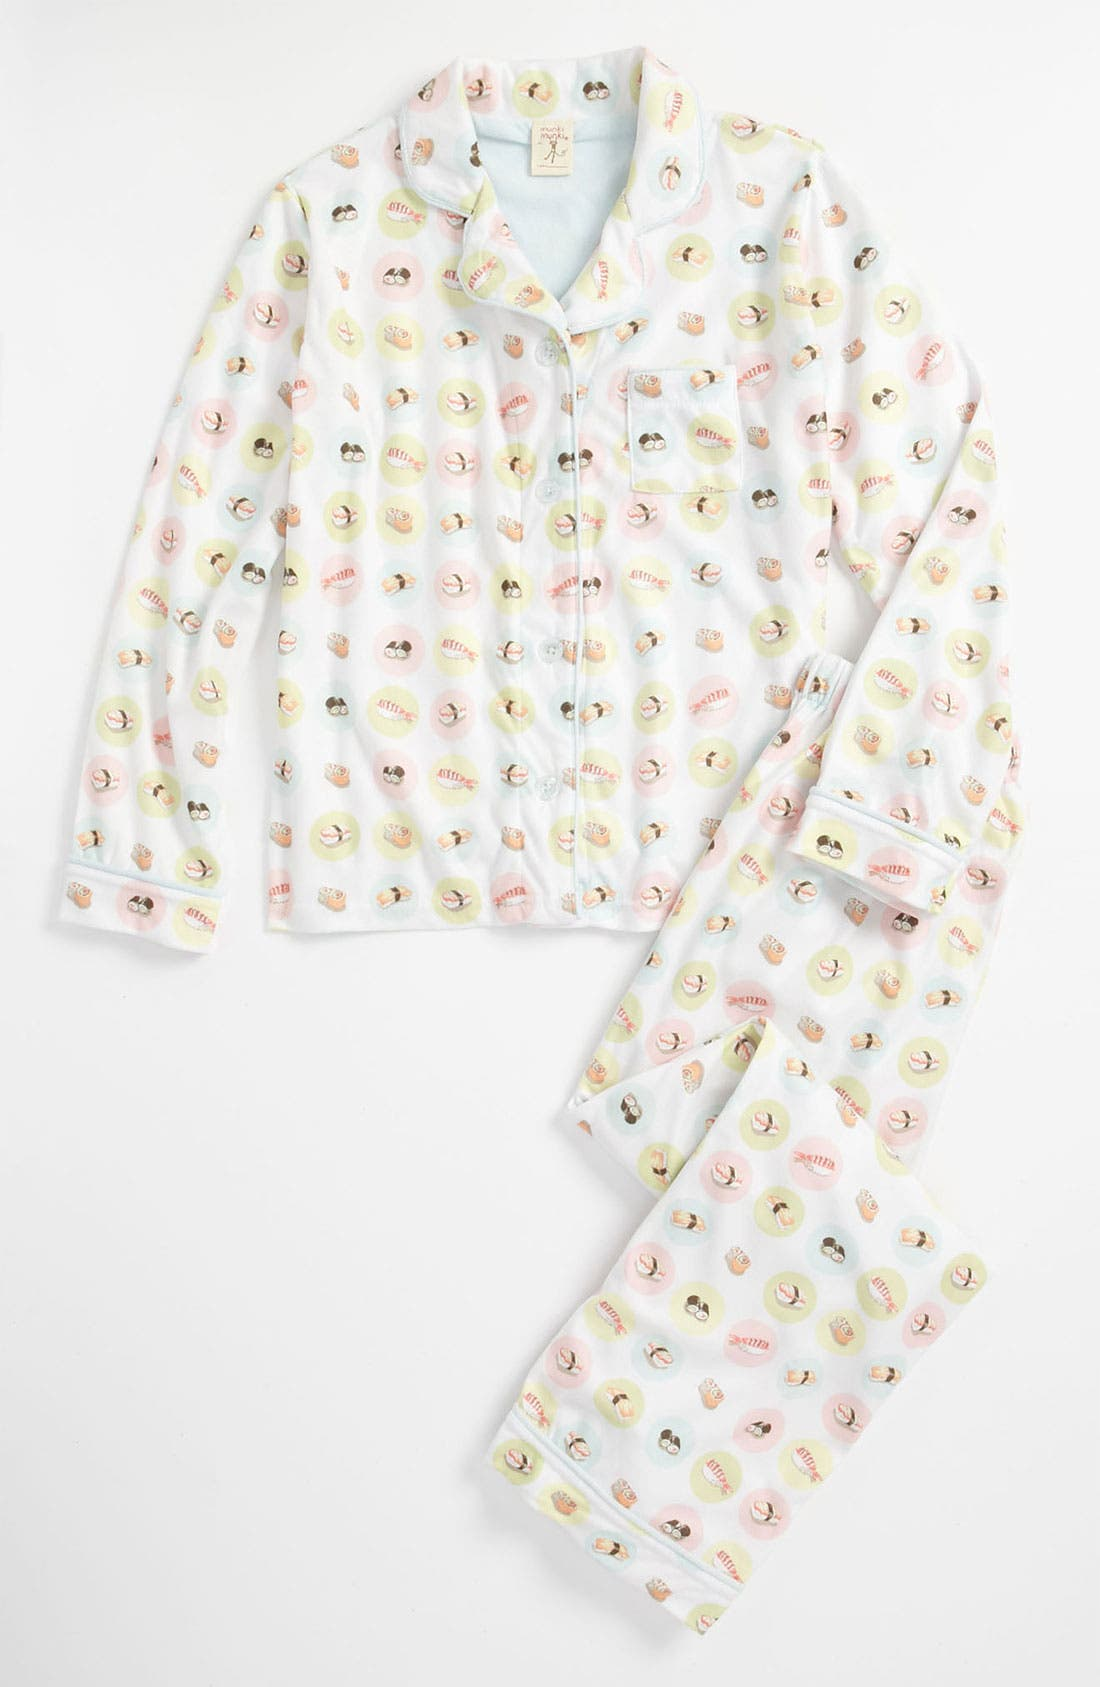 Alternate Image 1 Selected - Munki Munki Flannel Pajamas (Little Girls & Big Girls)